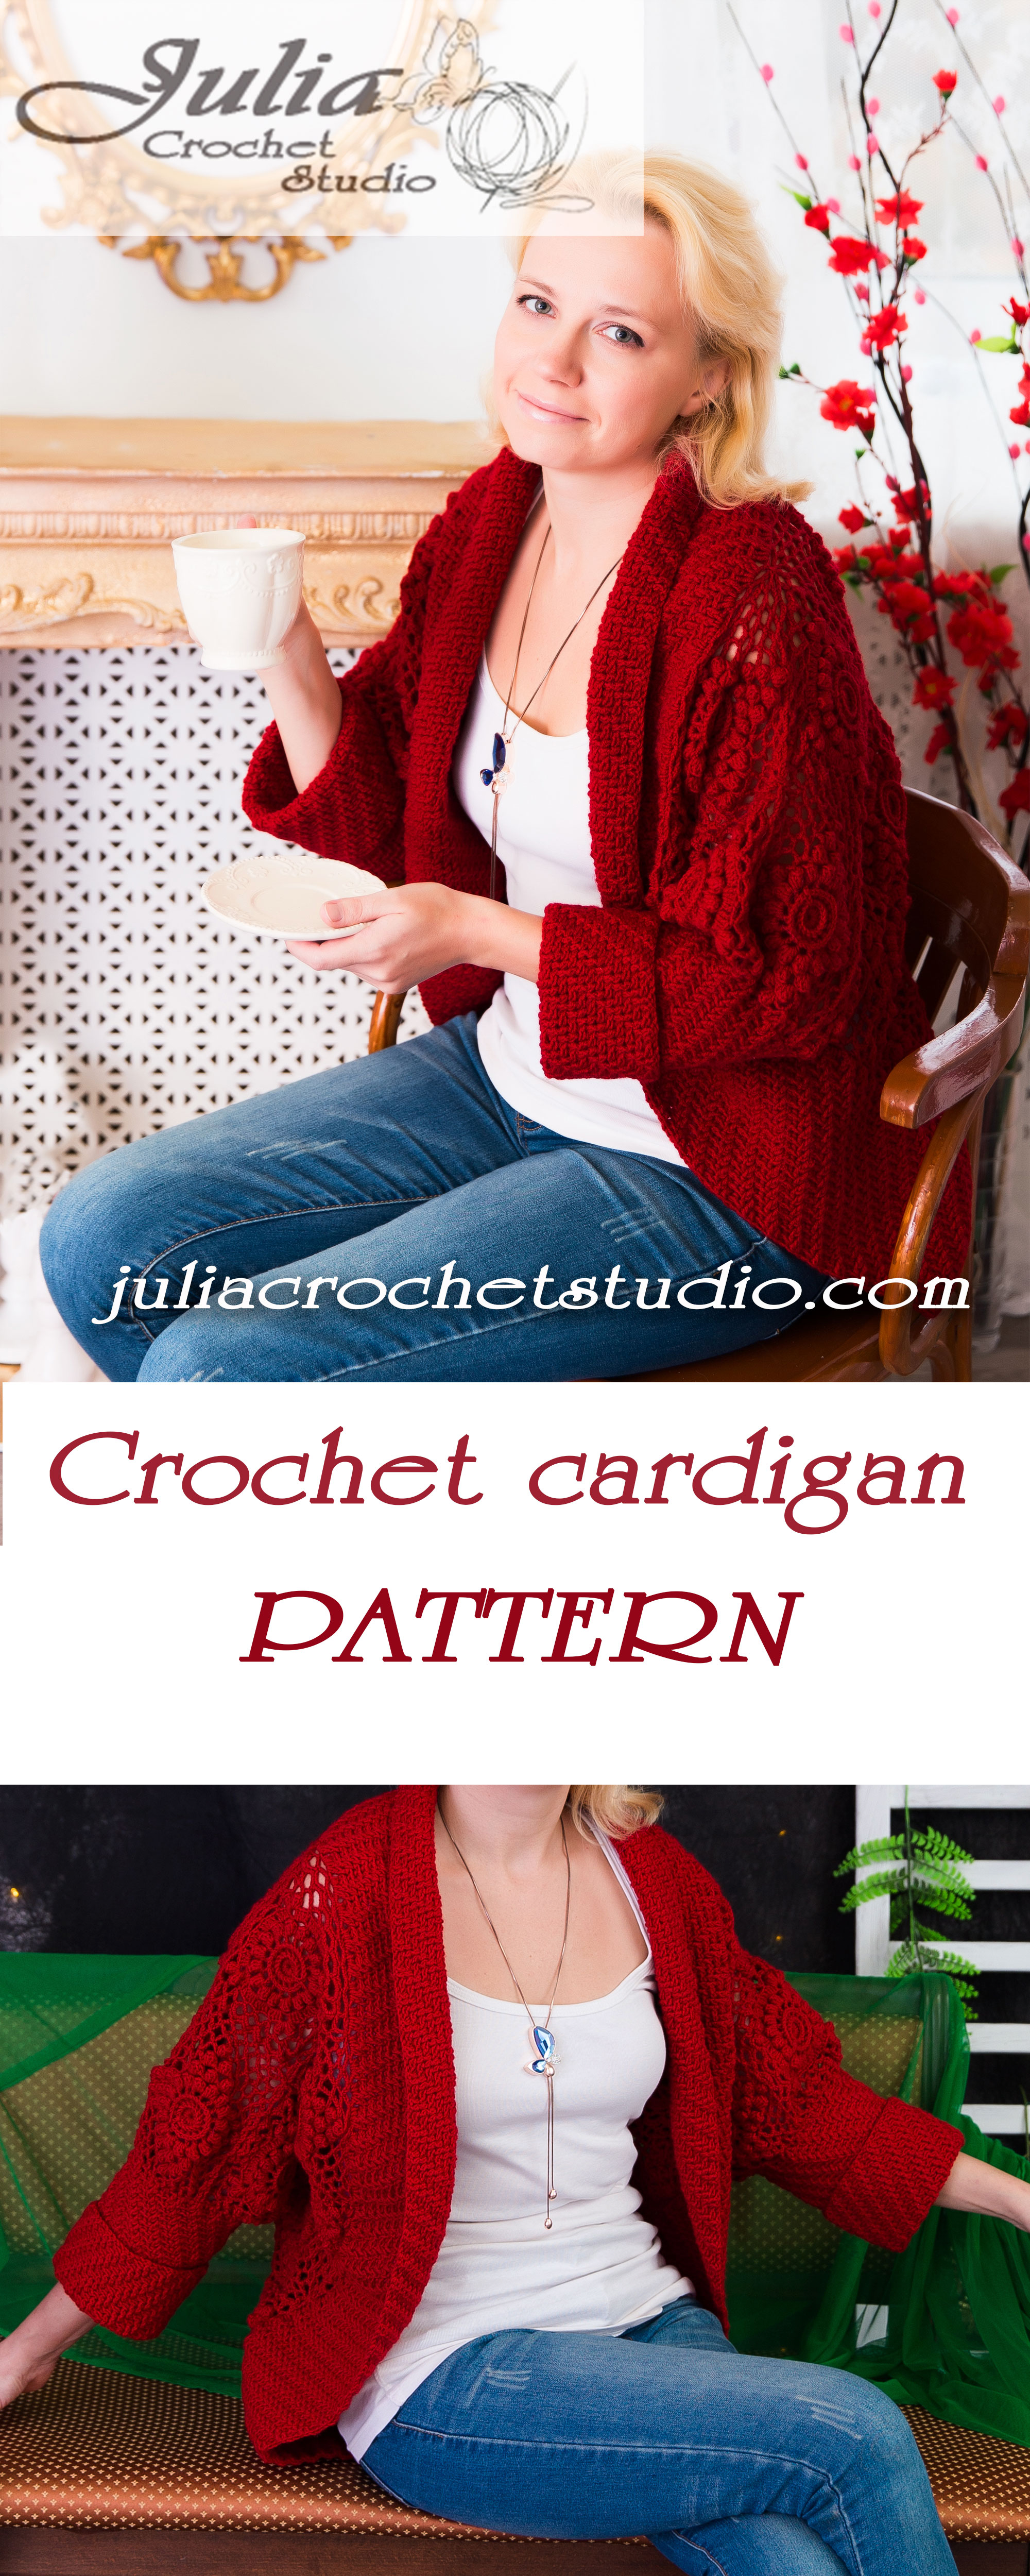 Crochet cardigan pattern